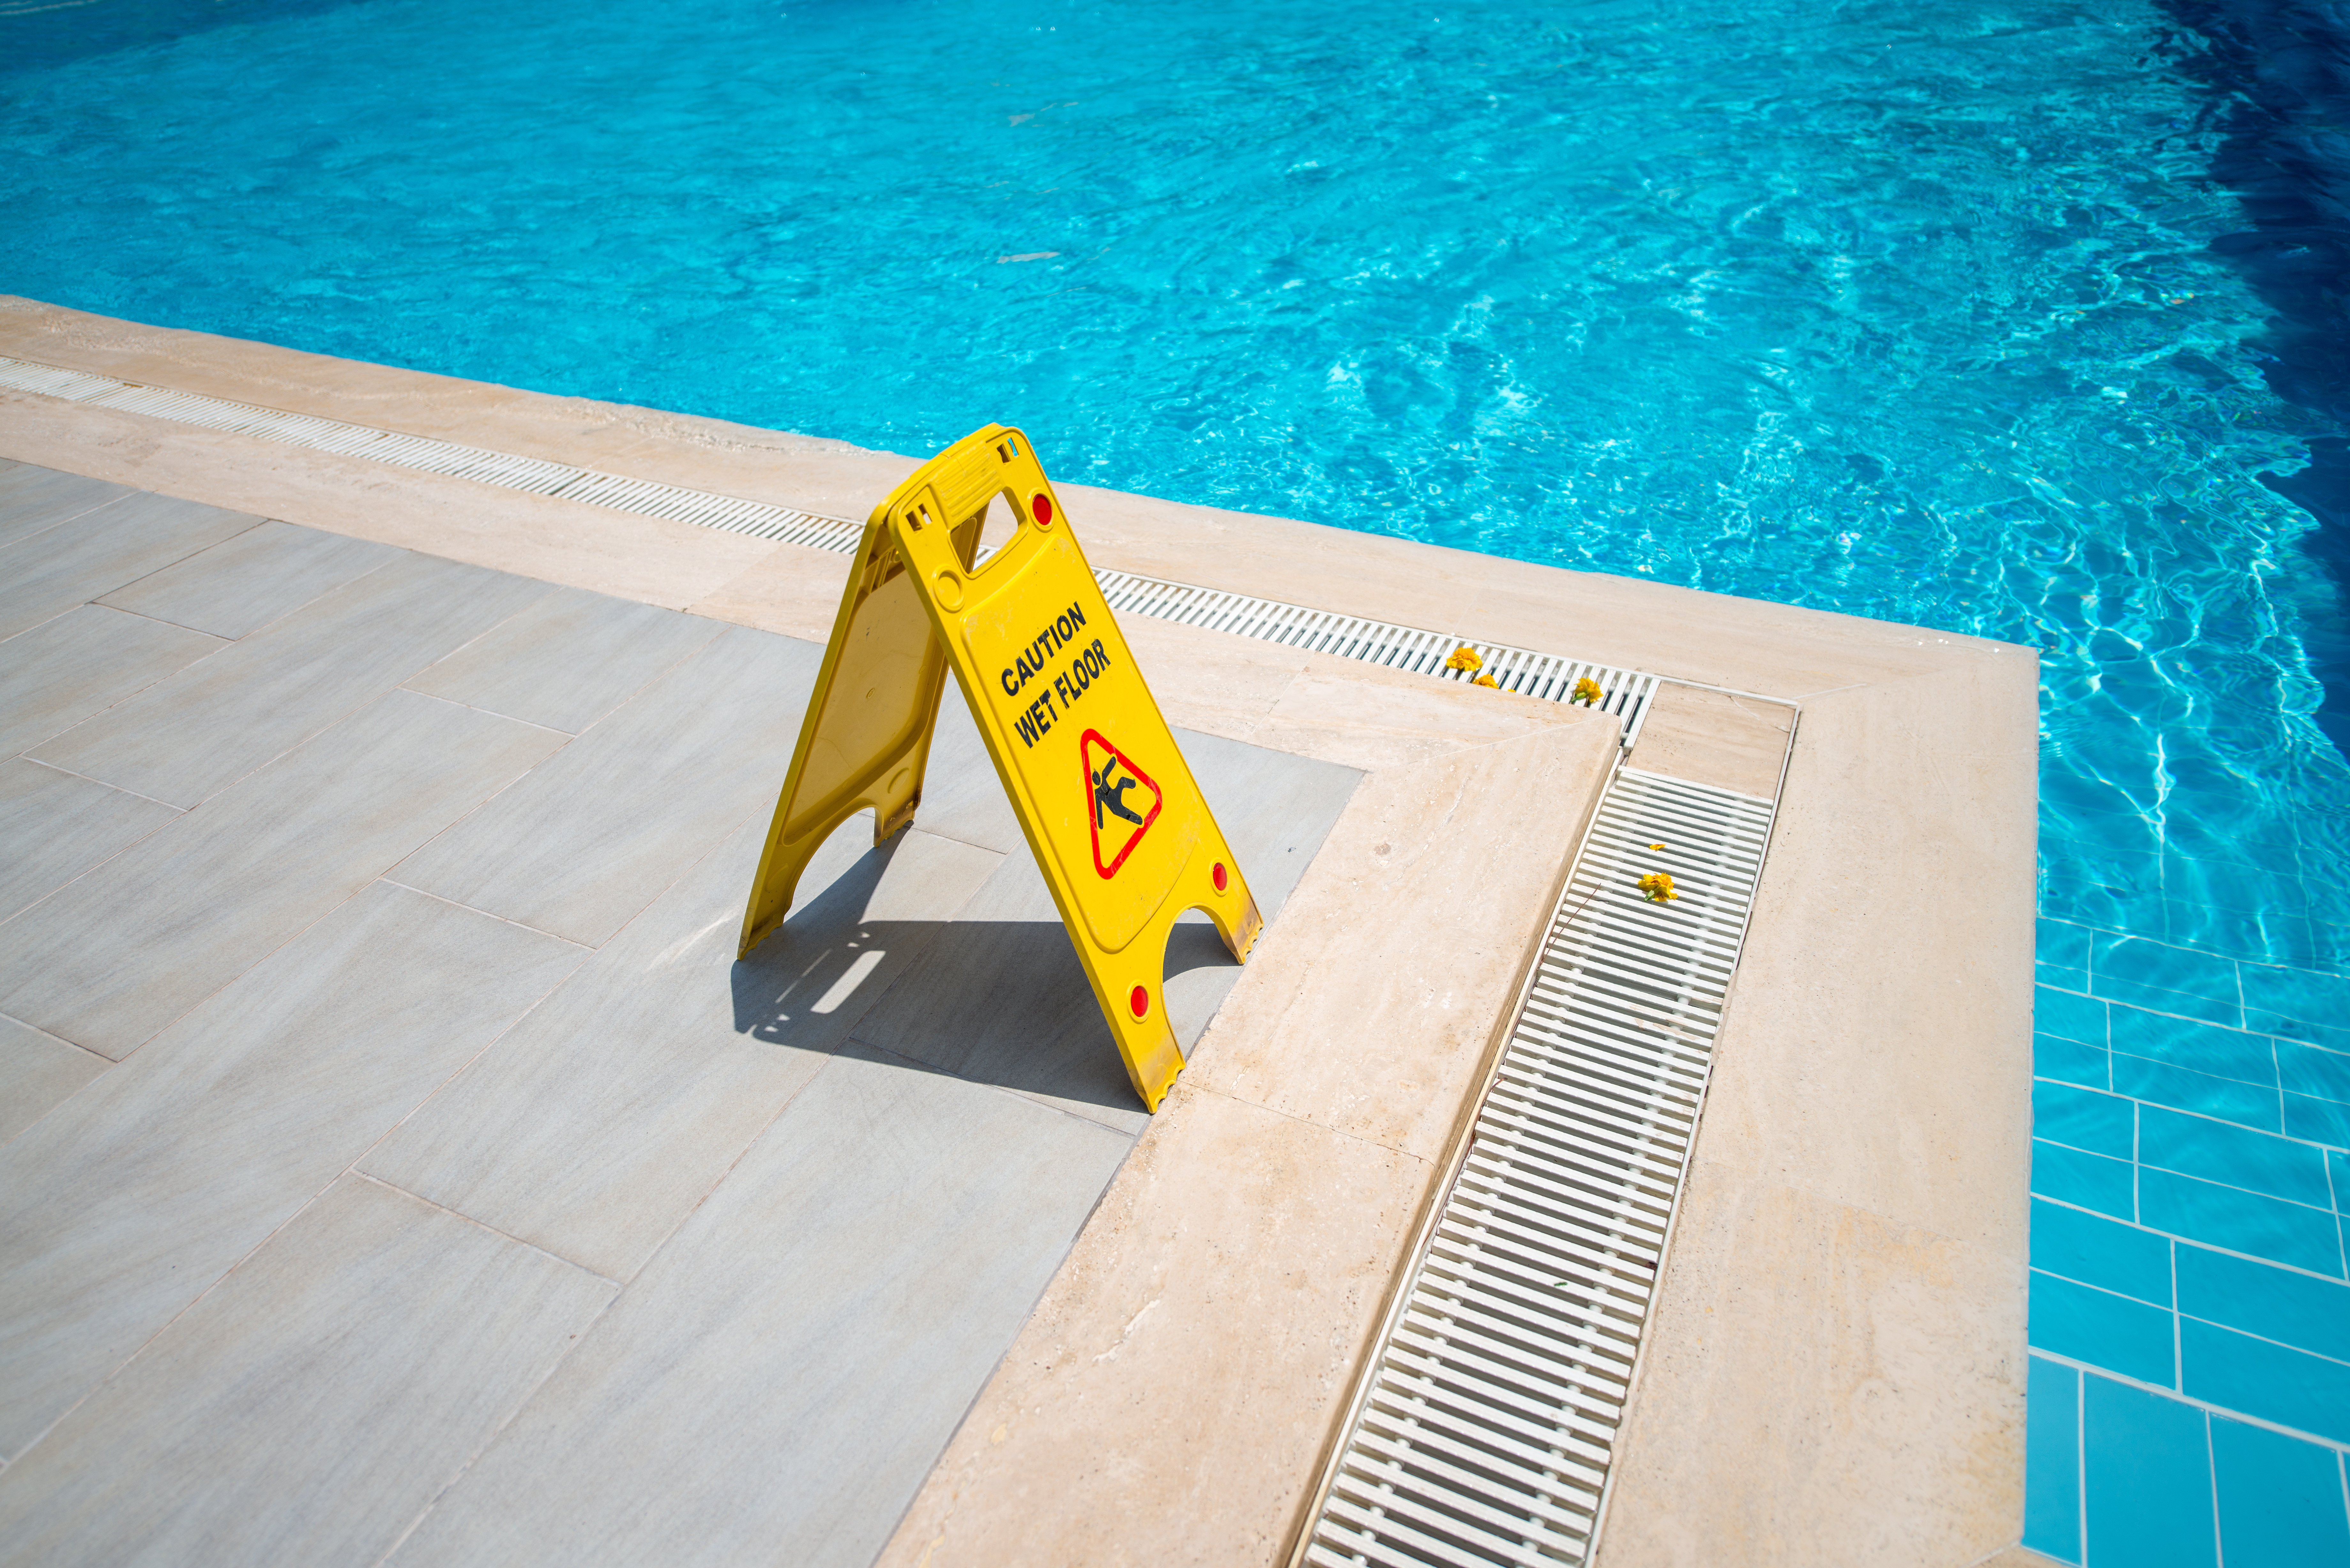 Prevent Slips and Falls Around the Pool